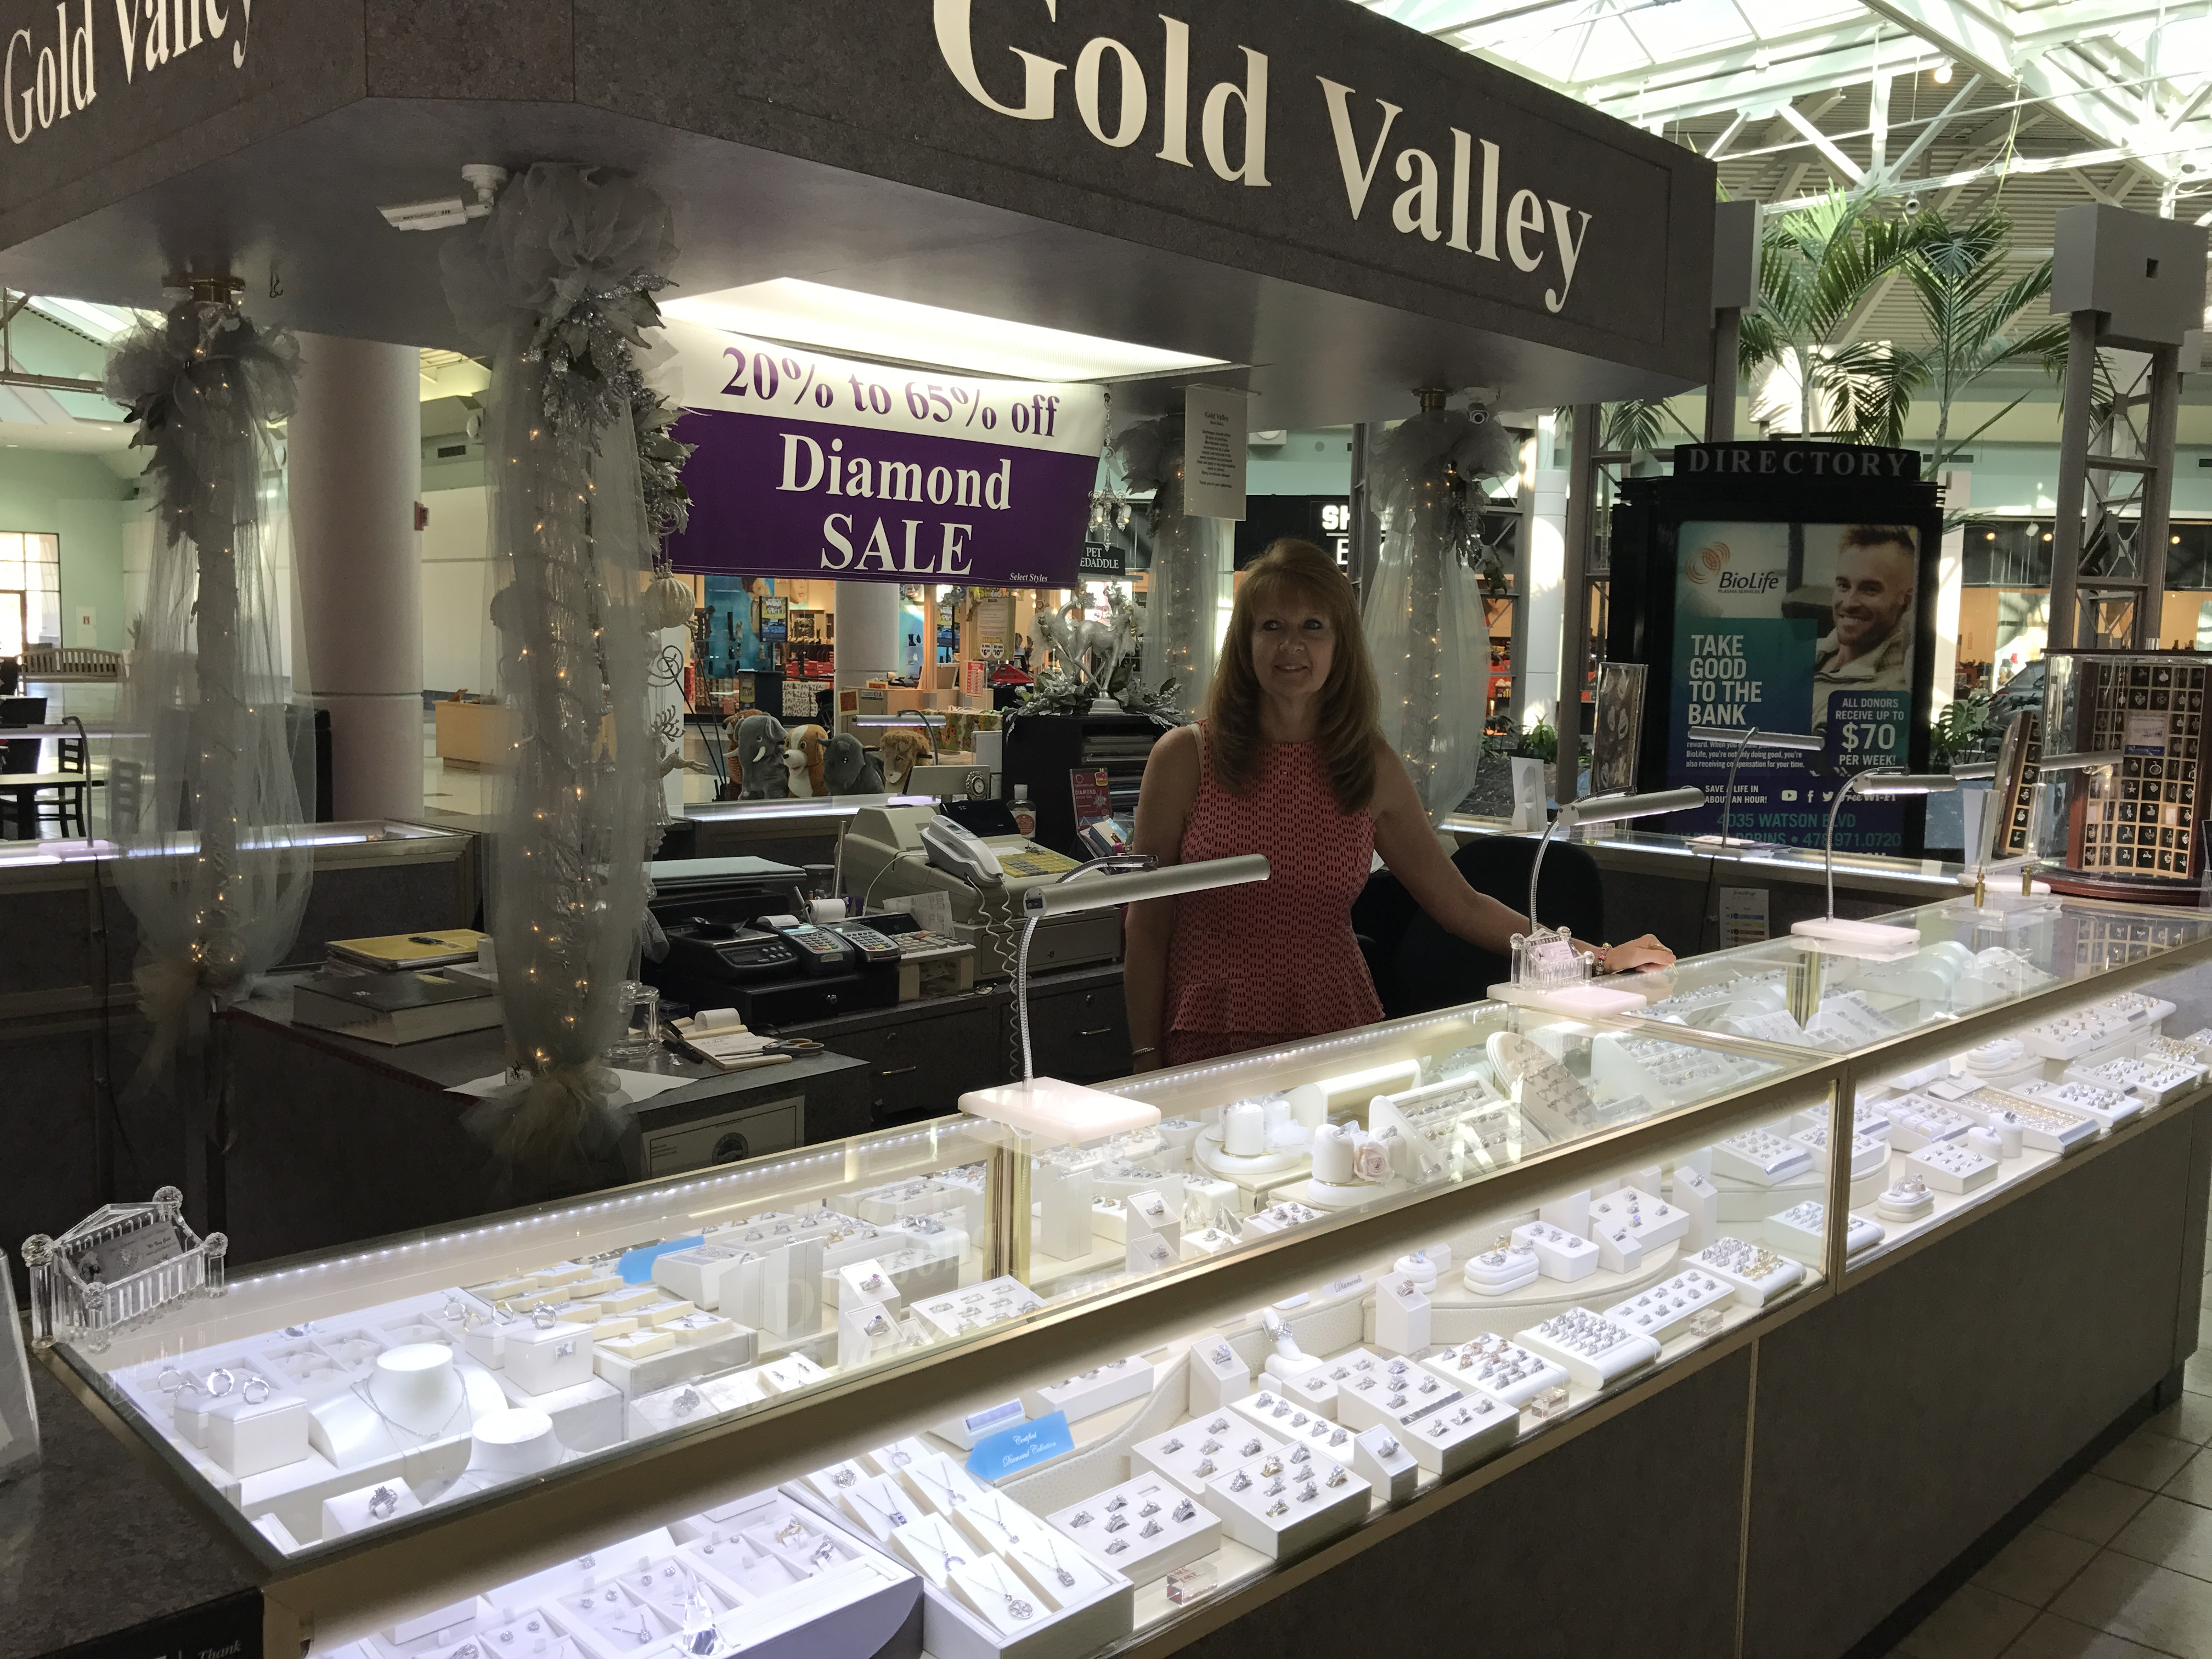 Gold Valley Jewelers